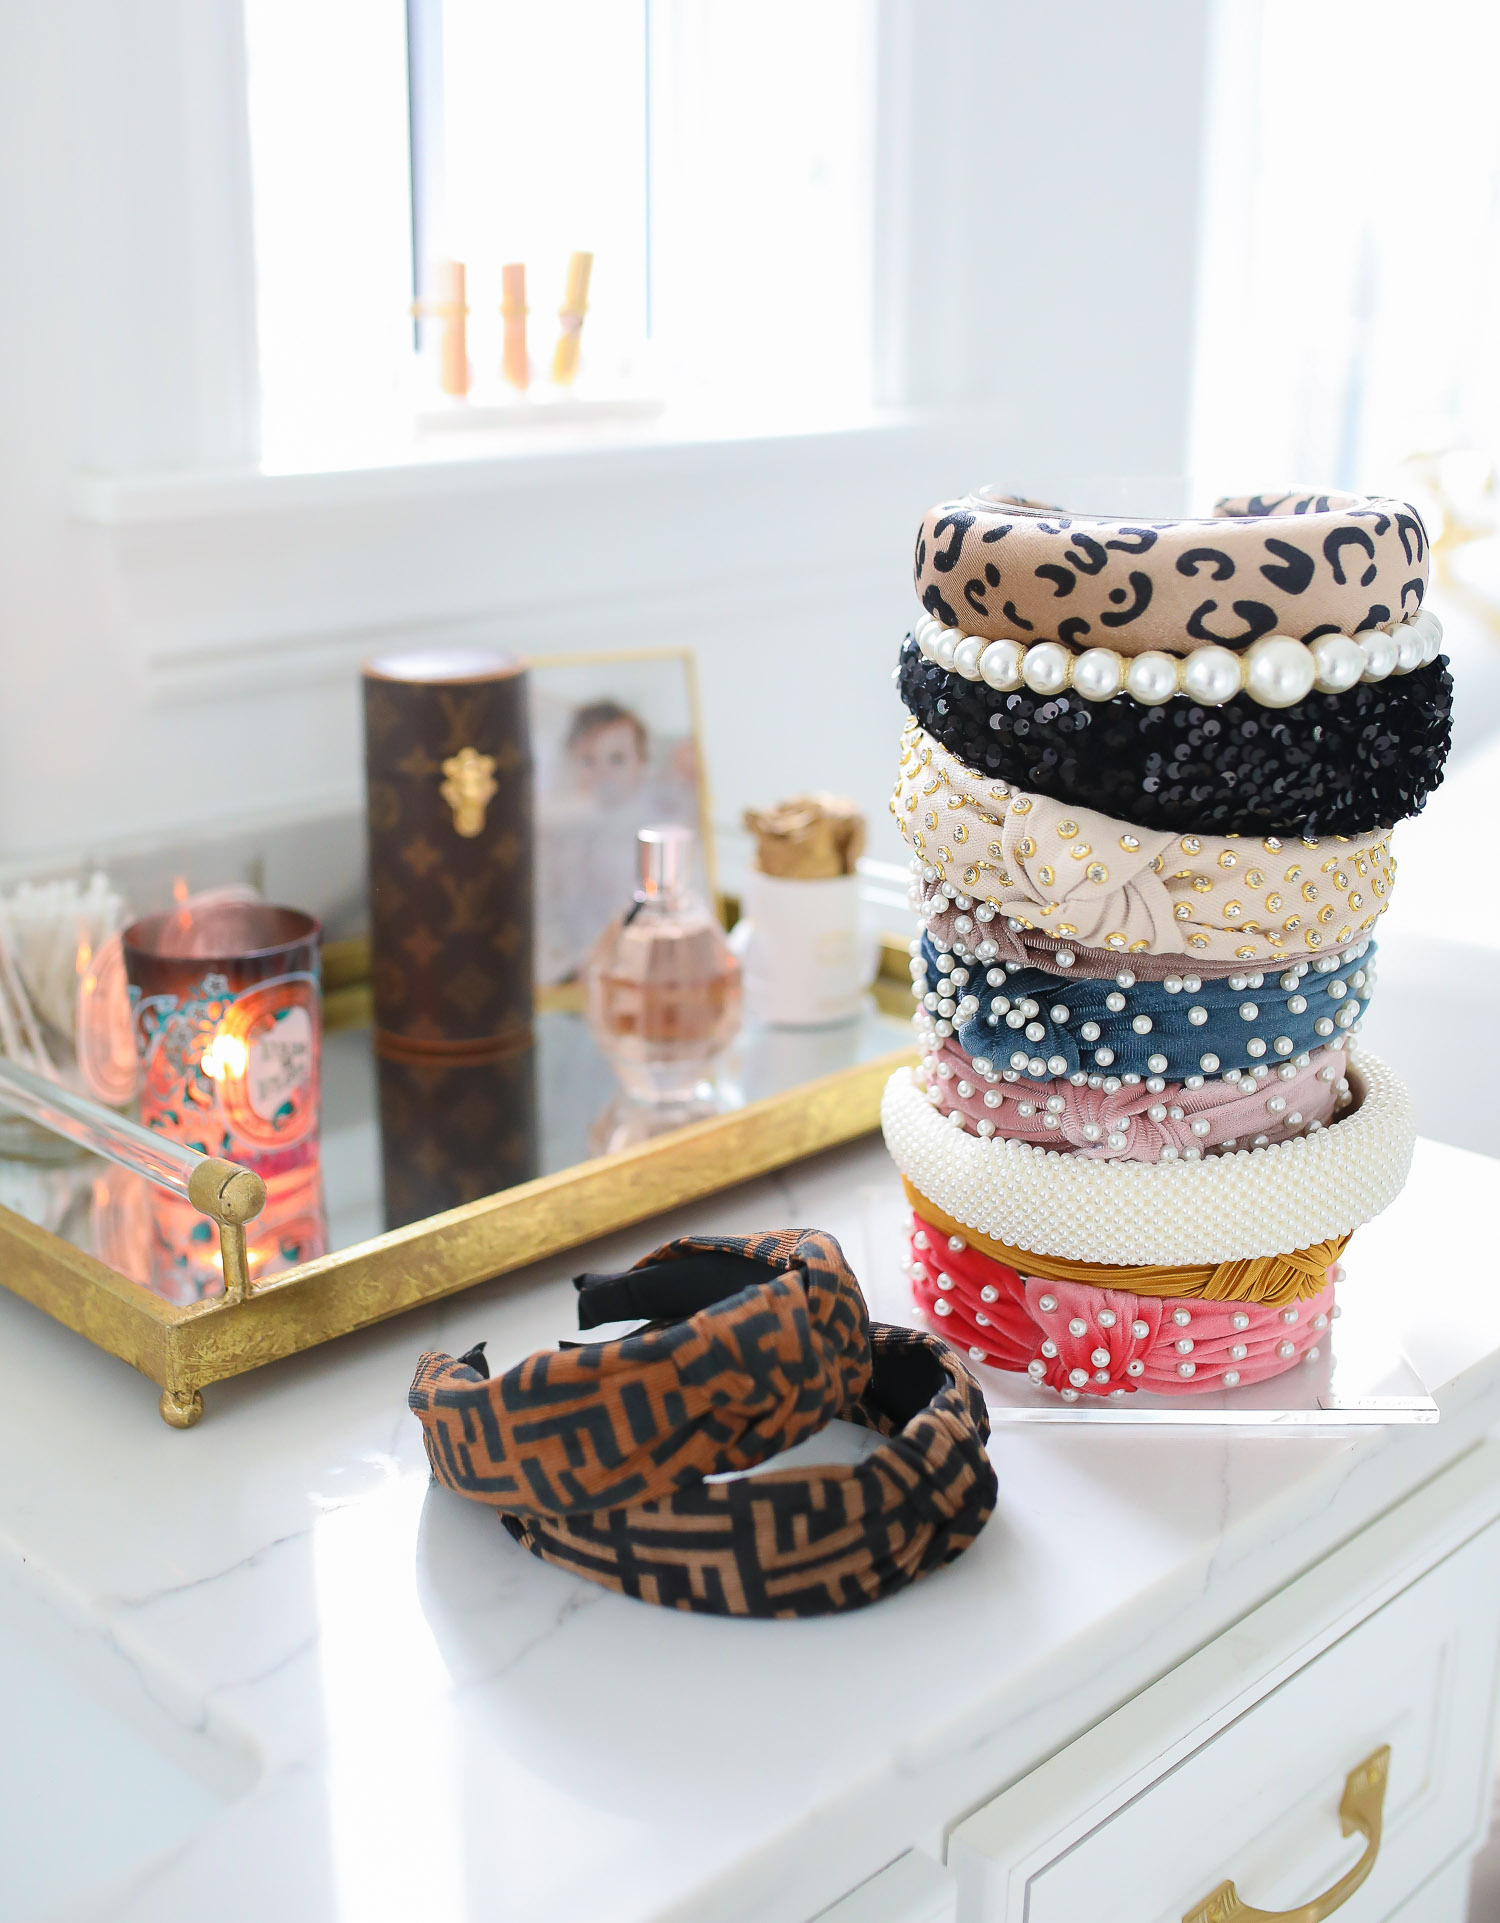 fendi dupe headbands, handband stand, swig marble cup insulated, top amazon must haves, amazon best buys 2020, emily gemma, amazon prime must haves blog post | Amazon Prime Favorites by popular US life and style blog, The Sweetest Thing: image of various Amazon Prime headbands.